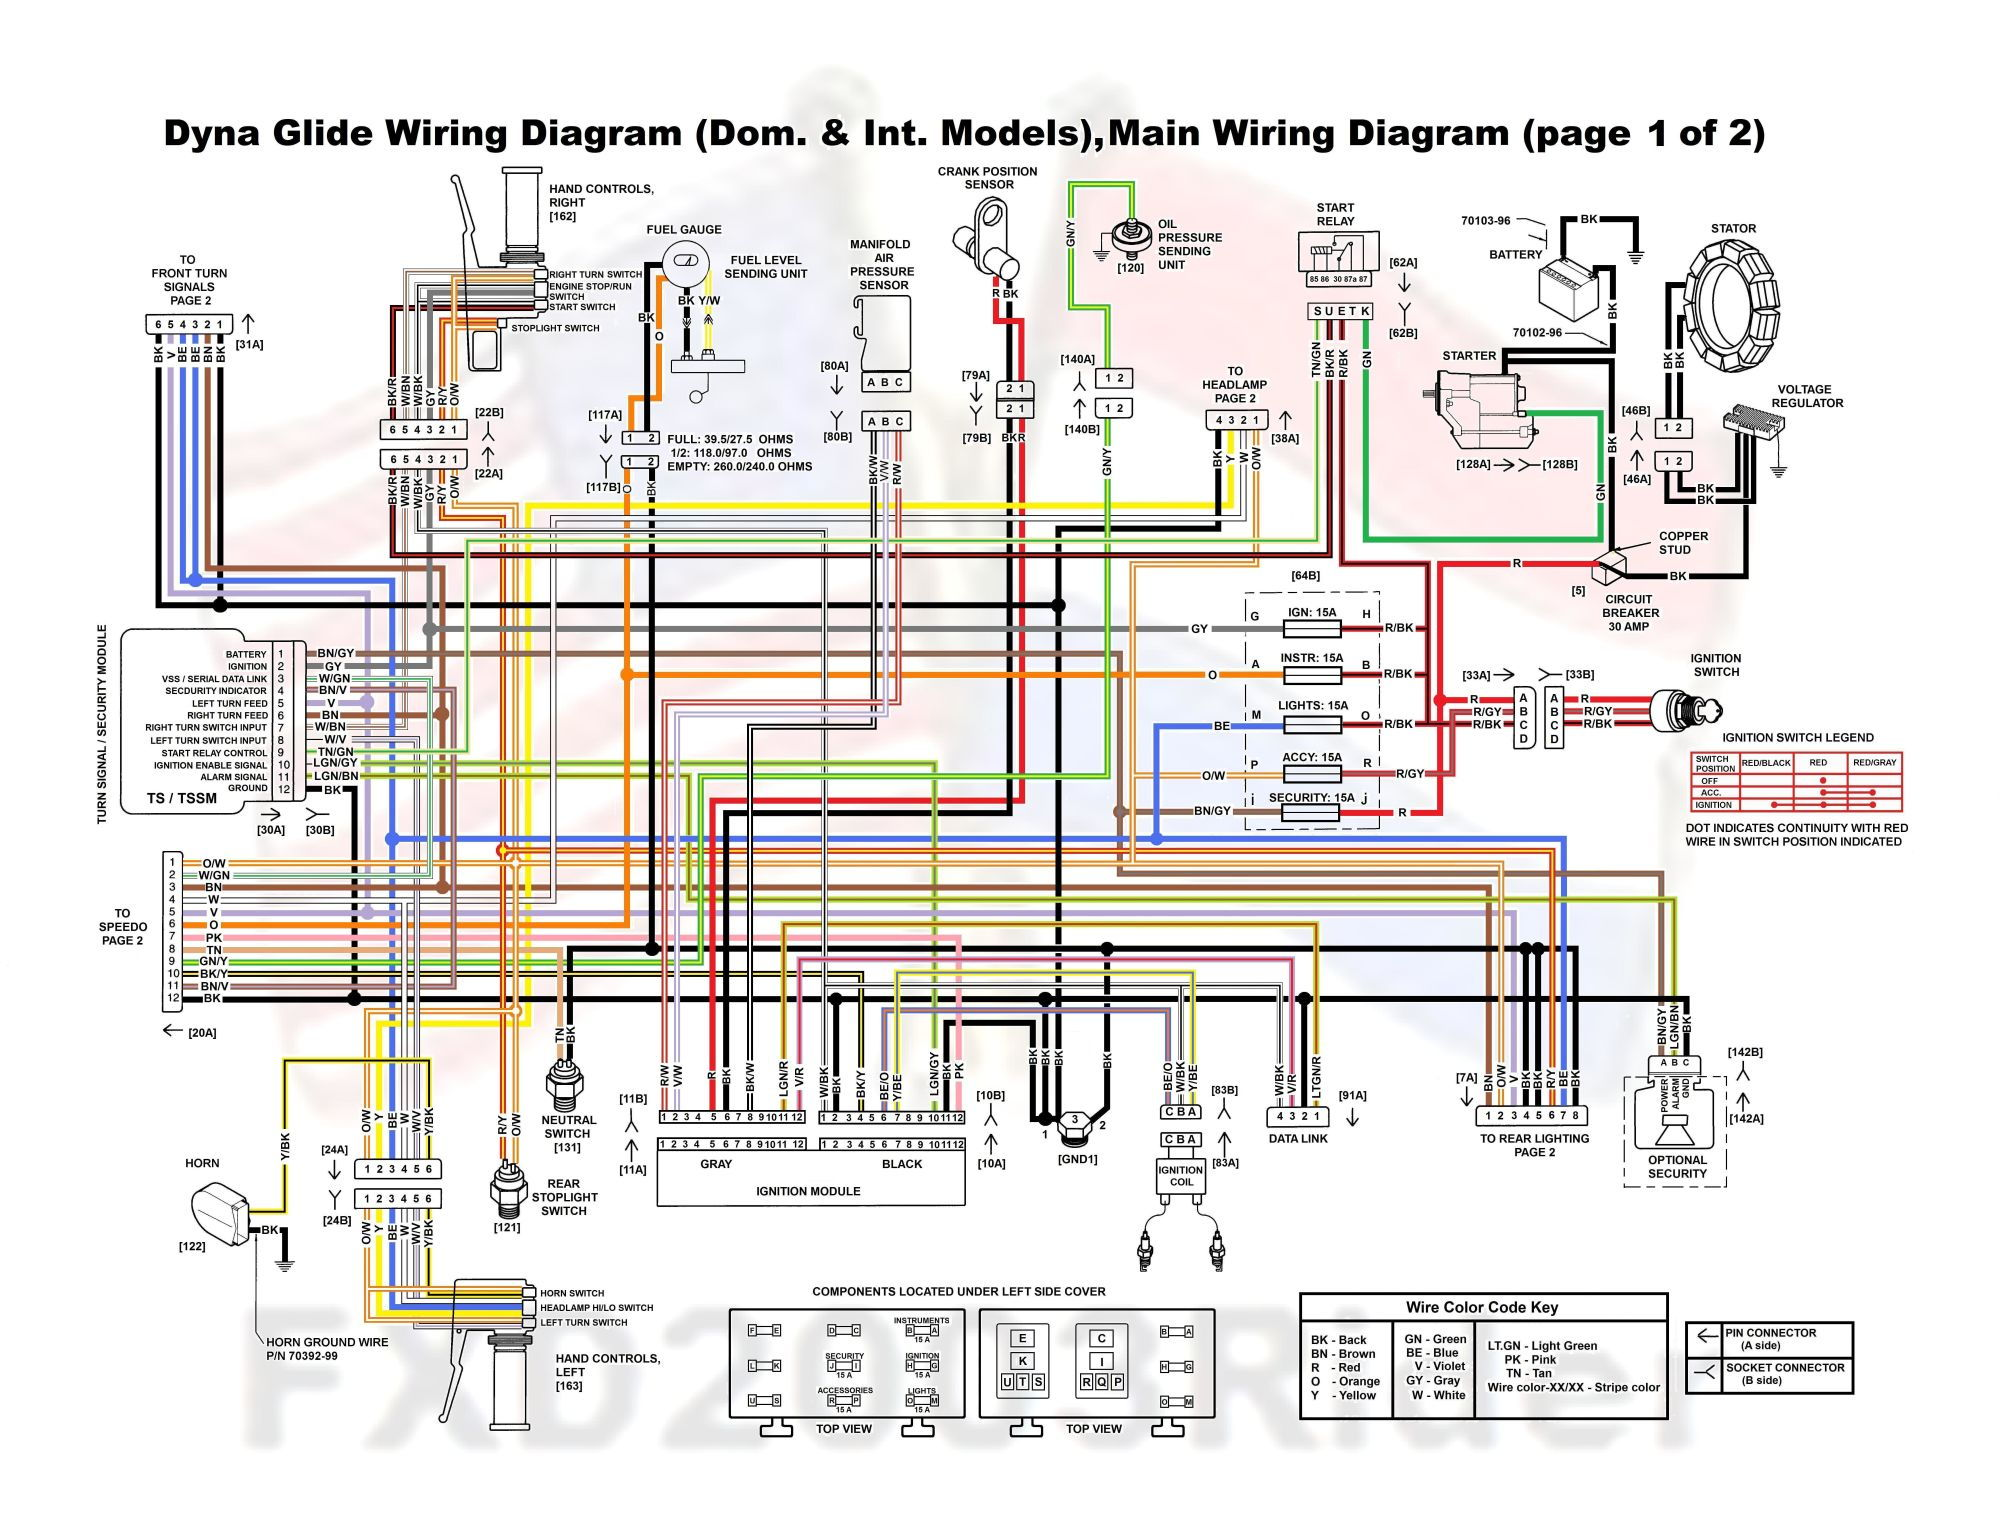 2001 Dyna Colored Lighting Wiring Diagram | Wiring Diagram Harley Wide Glide Wiring Diagram on